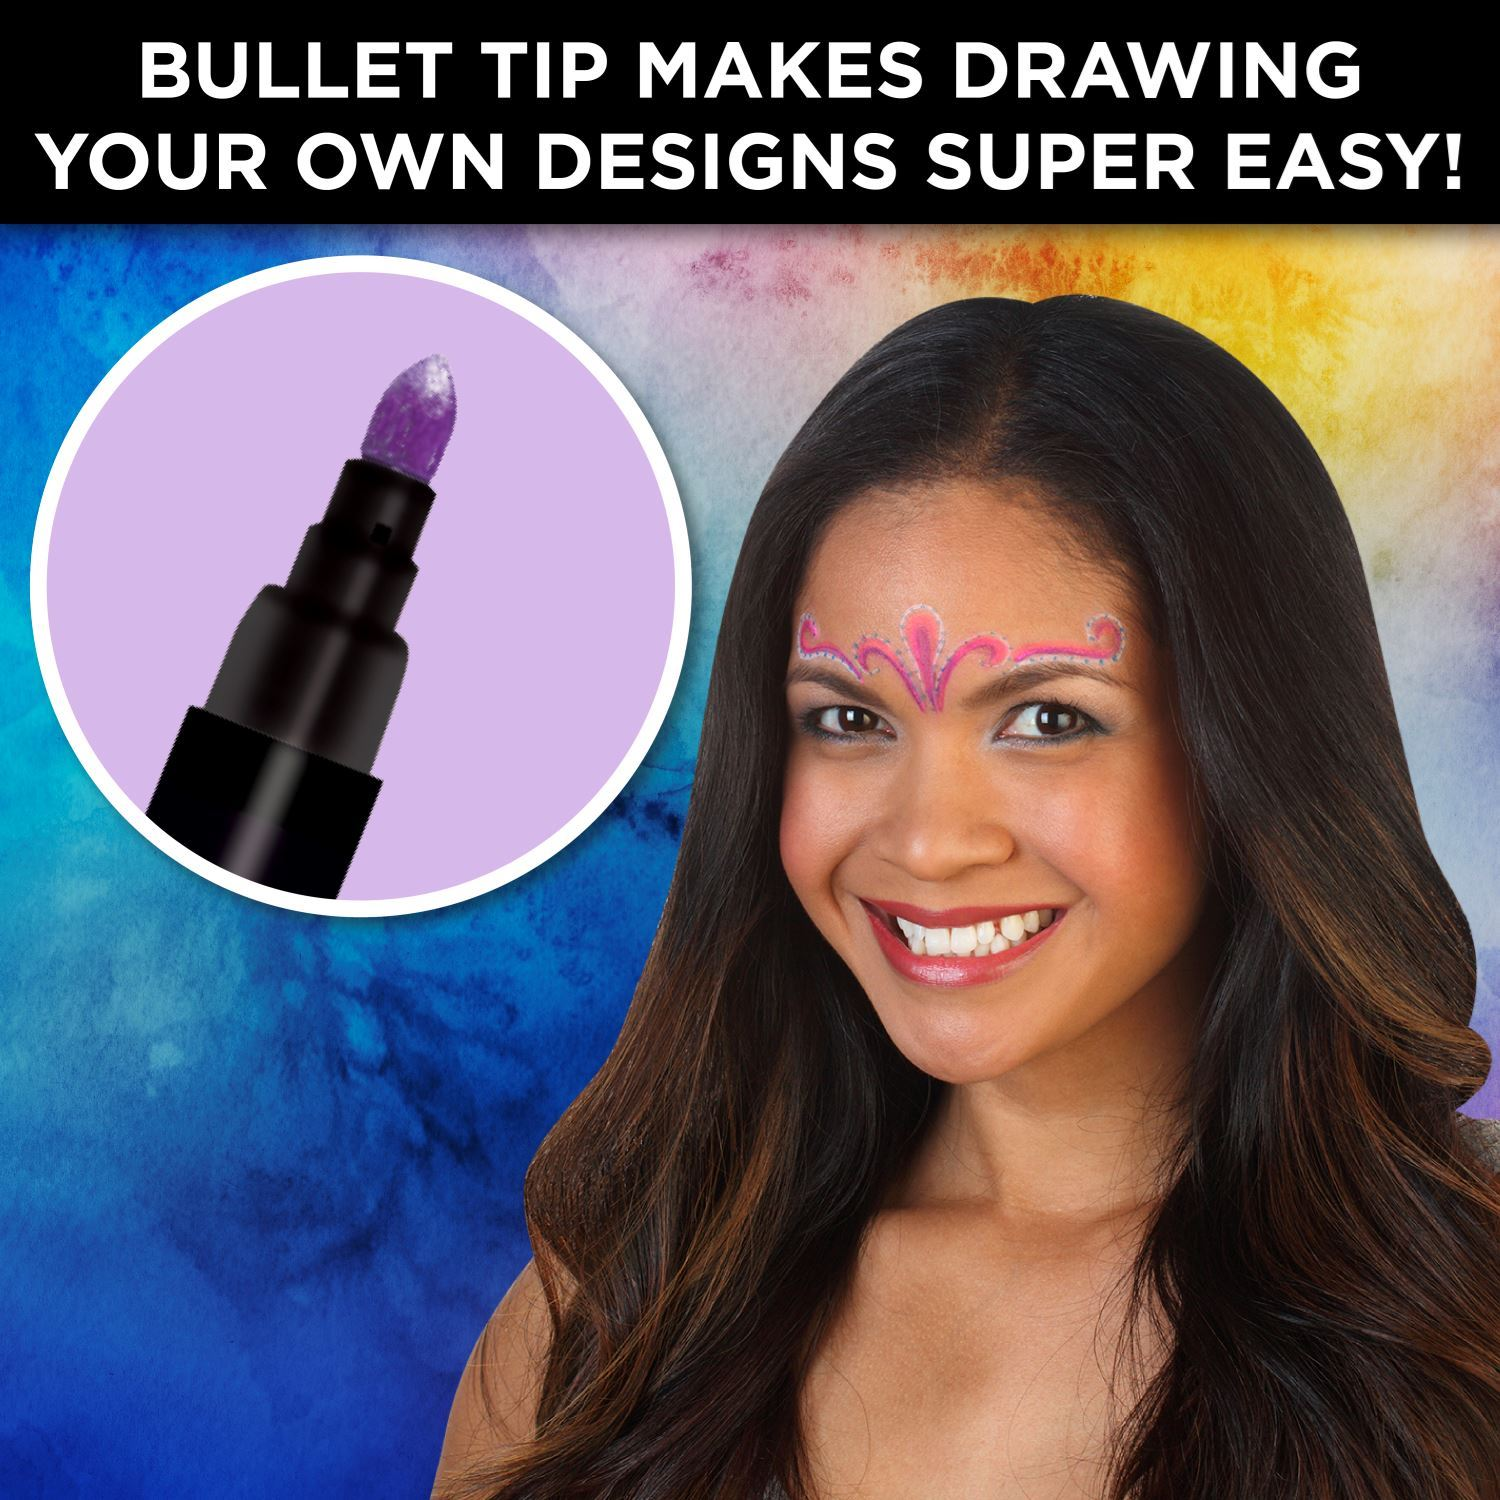 32671 Body Art Face & Body Markers Kaleidoscope 12 Pack Infographic Tip Detail